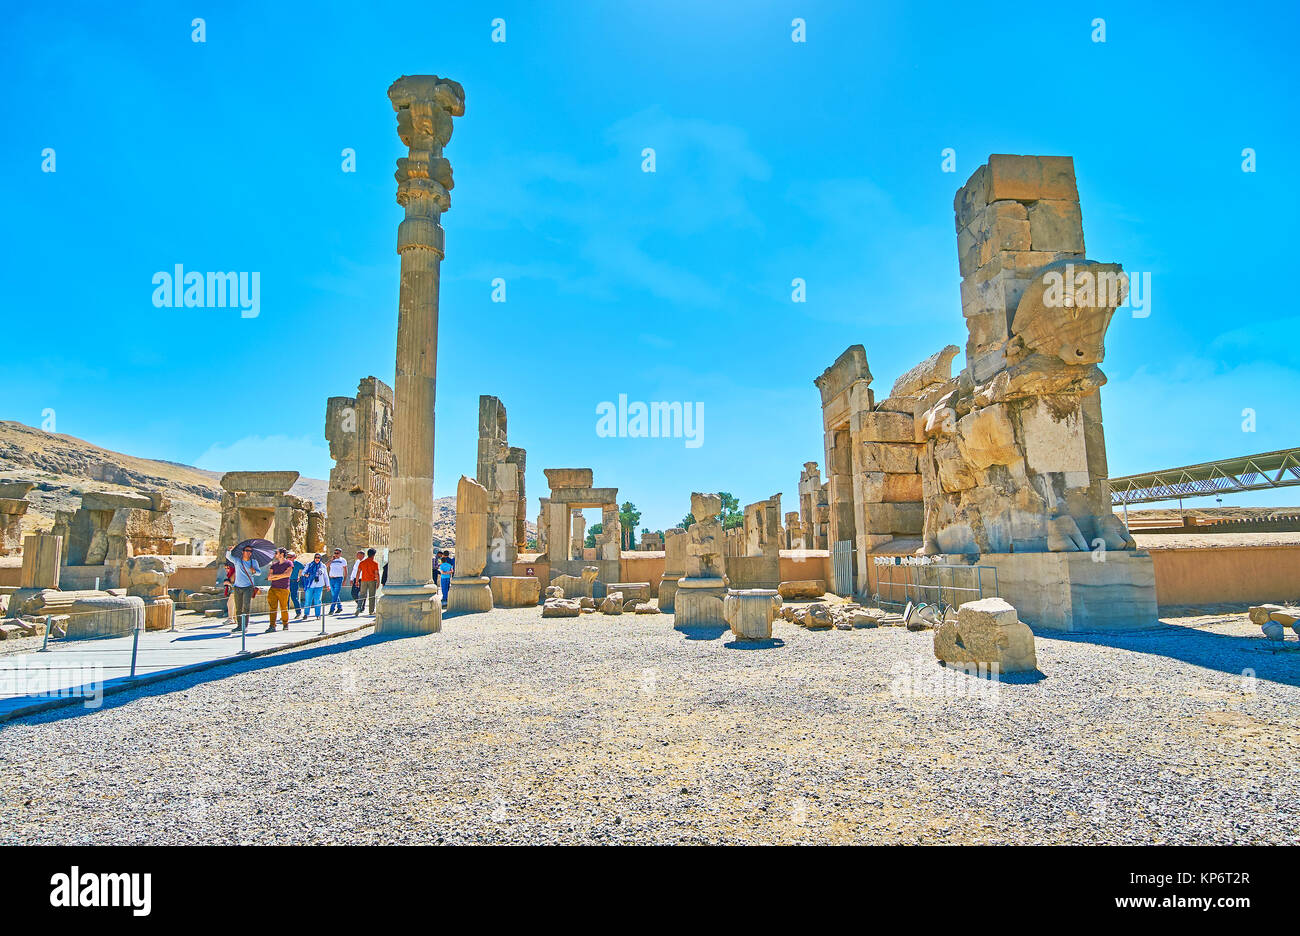 PERSEPOLIS, IRAN - OCTOBER 13, 2017: The hot midday in Persepolis archaeological site, the ancient city of Persia, - Stock Image